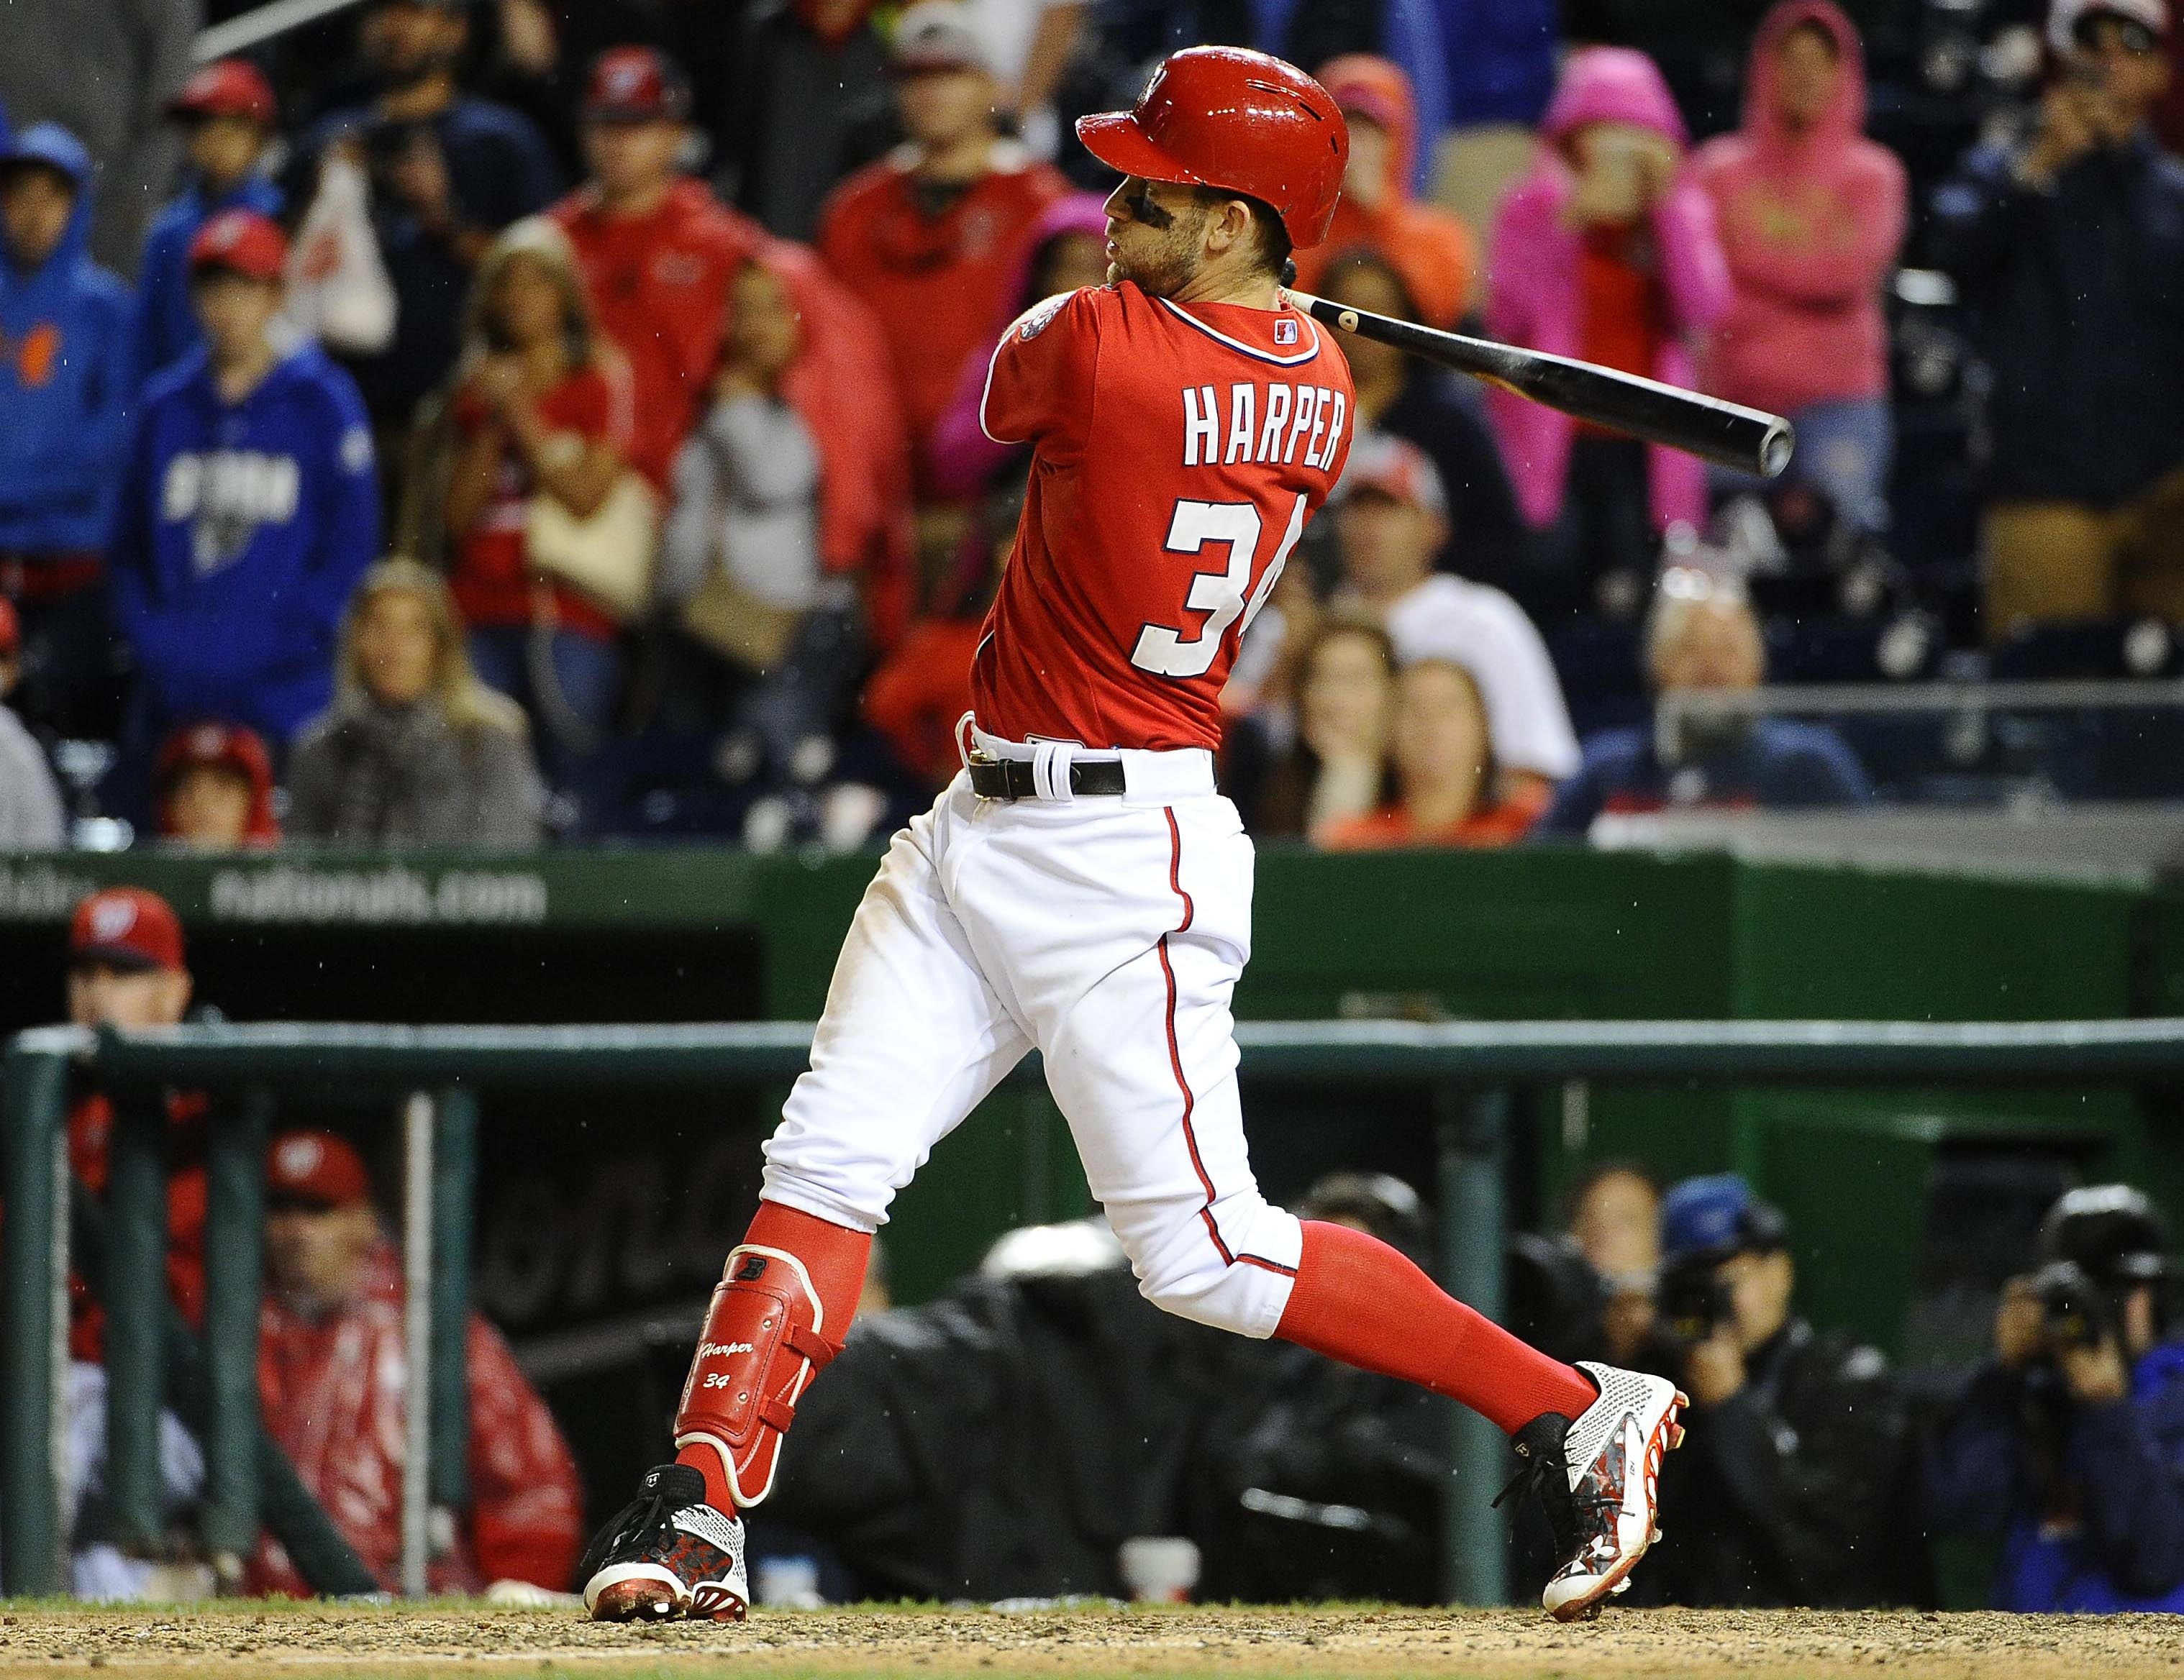 Obviously, the Nationals are now the Bryce Harper show, but there is a lot of fantasy talent on this roster after him.